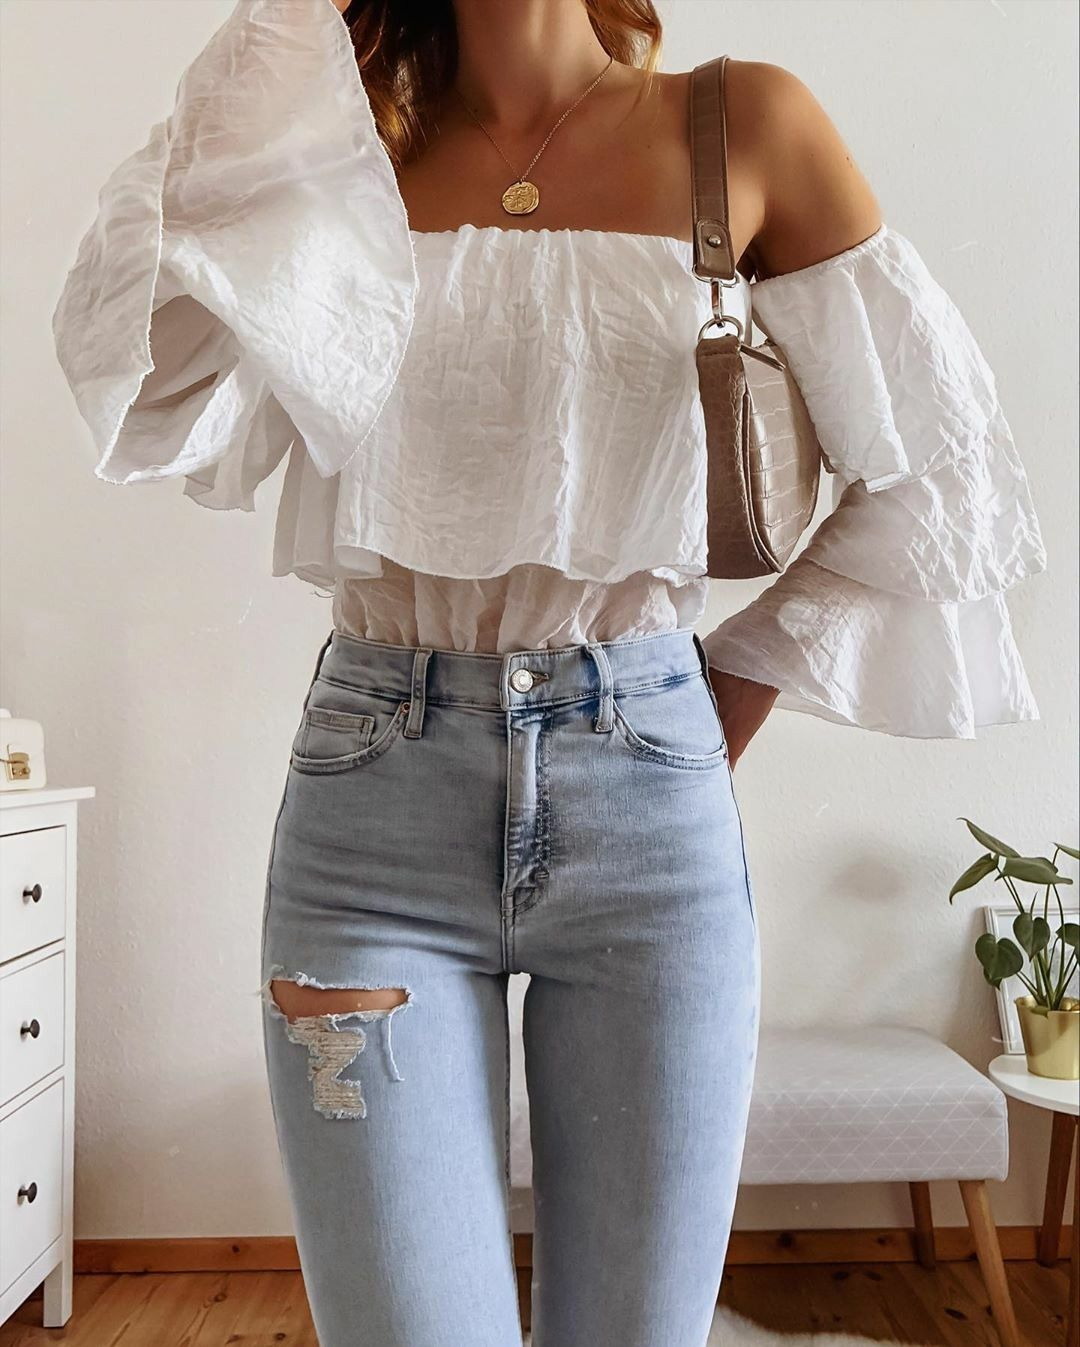 Clothes For 10 Year Olds New Styles For Girls Teenage Fashion Dresses 20190103 Summer Fashion Outfits Winter Fashion Casual Winter Fashion Outfits